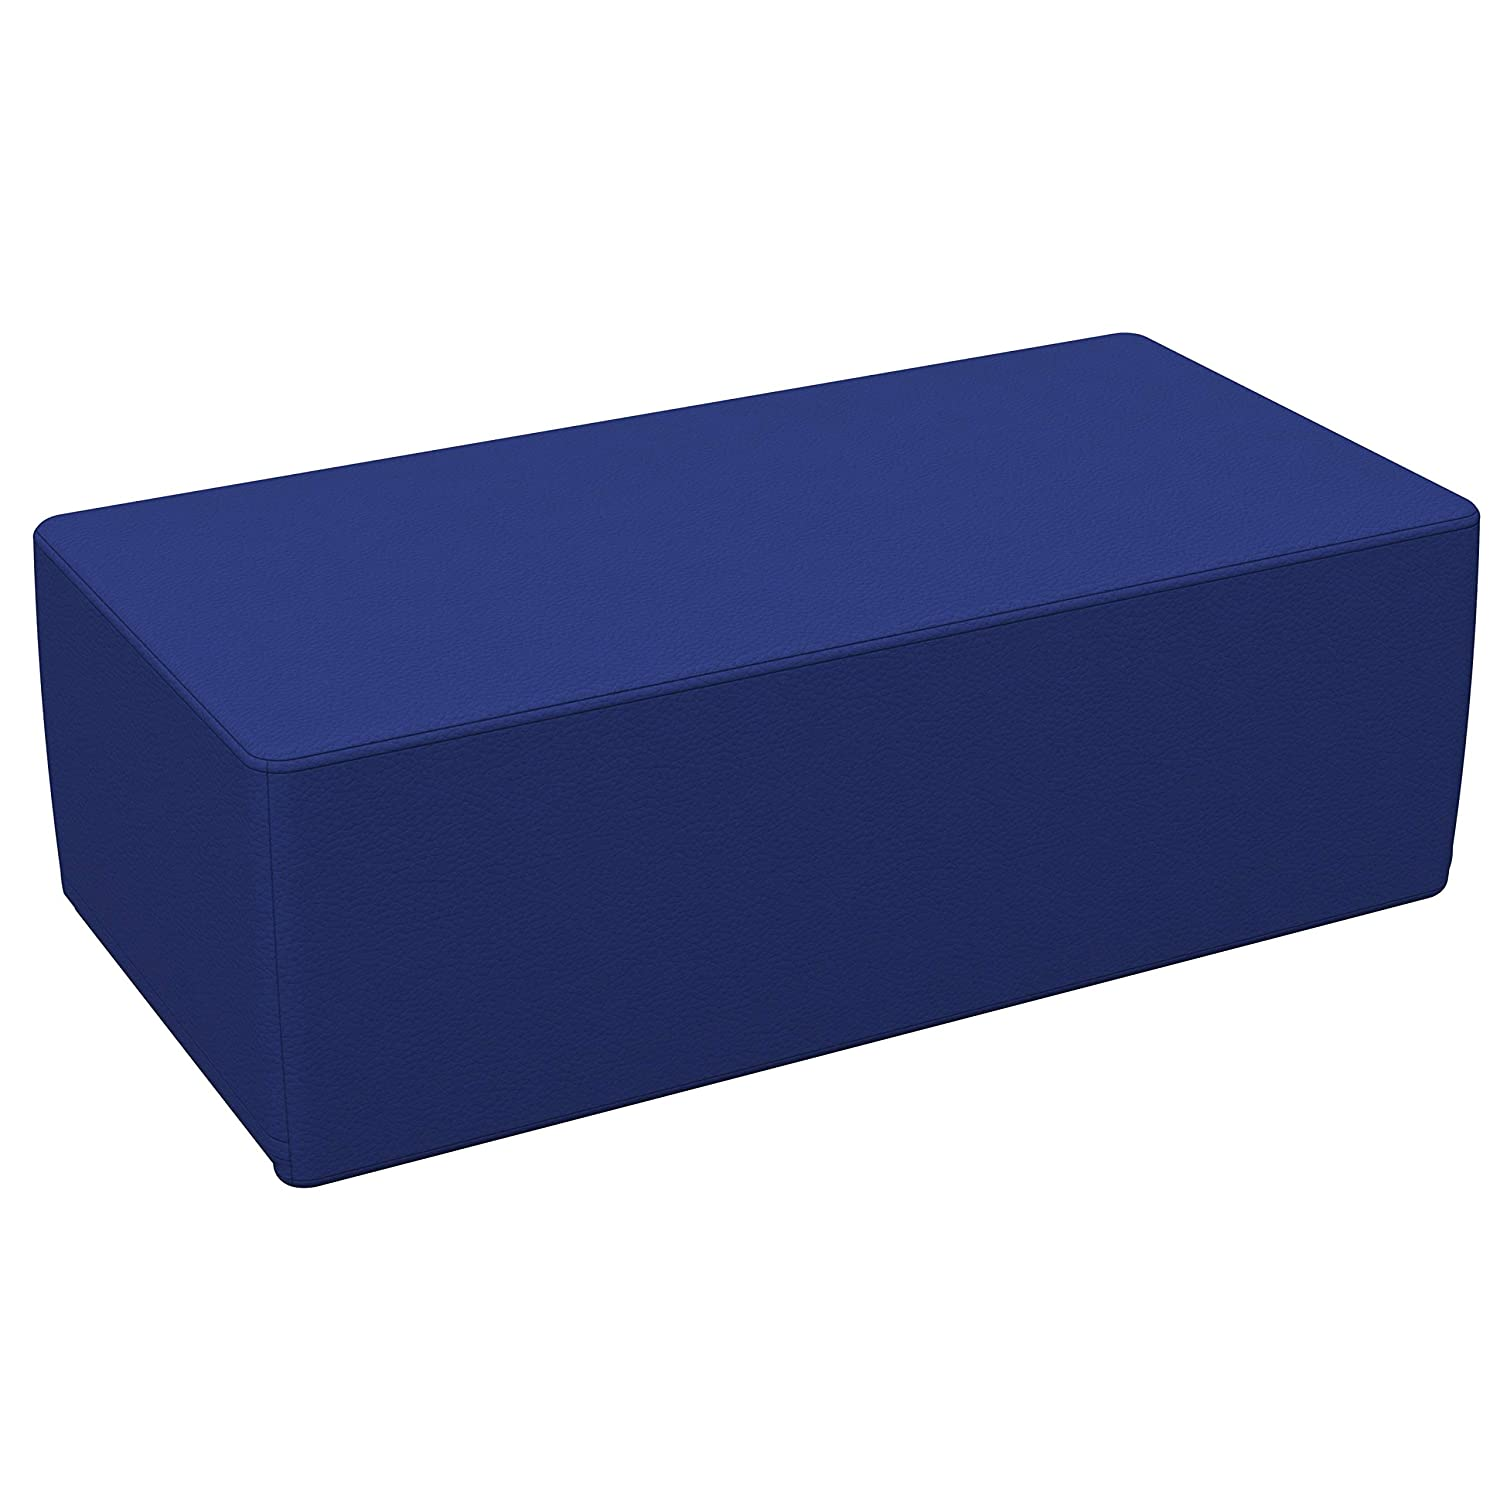 """FDP SoftScape 18"""" x 36"""" Rectangle Ottoman, Collaborative Flexible Seating for Kids, Teens, Adults Furniture for Classrooms, Libraries, Offices and Home, Junior 12"""" H - Blue"""